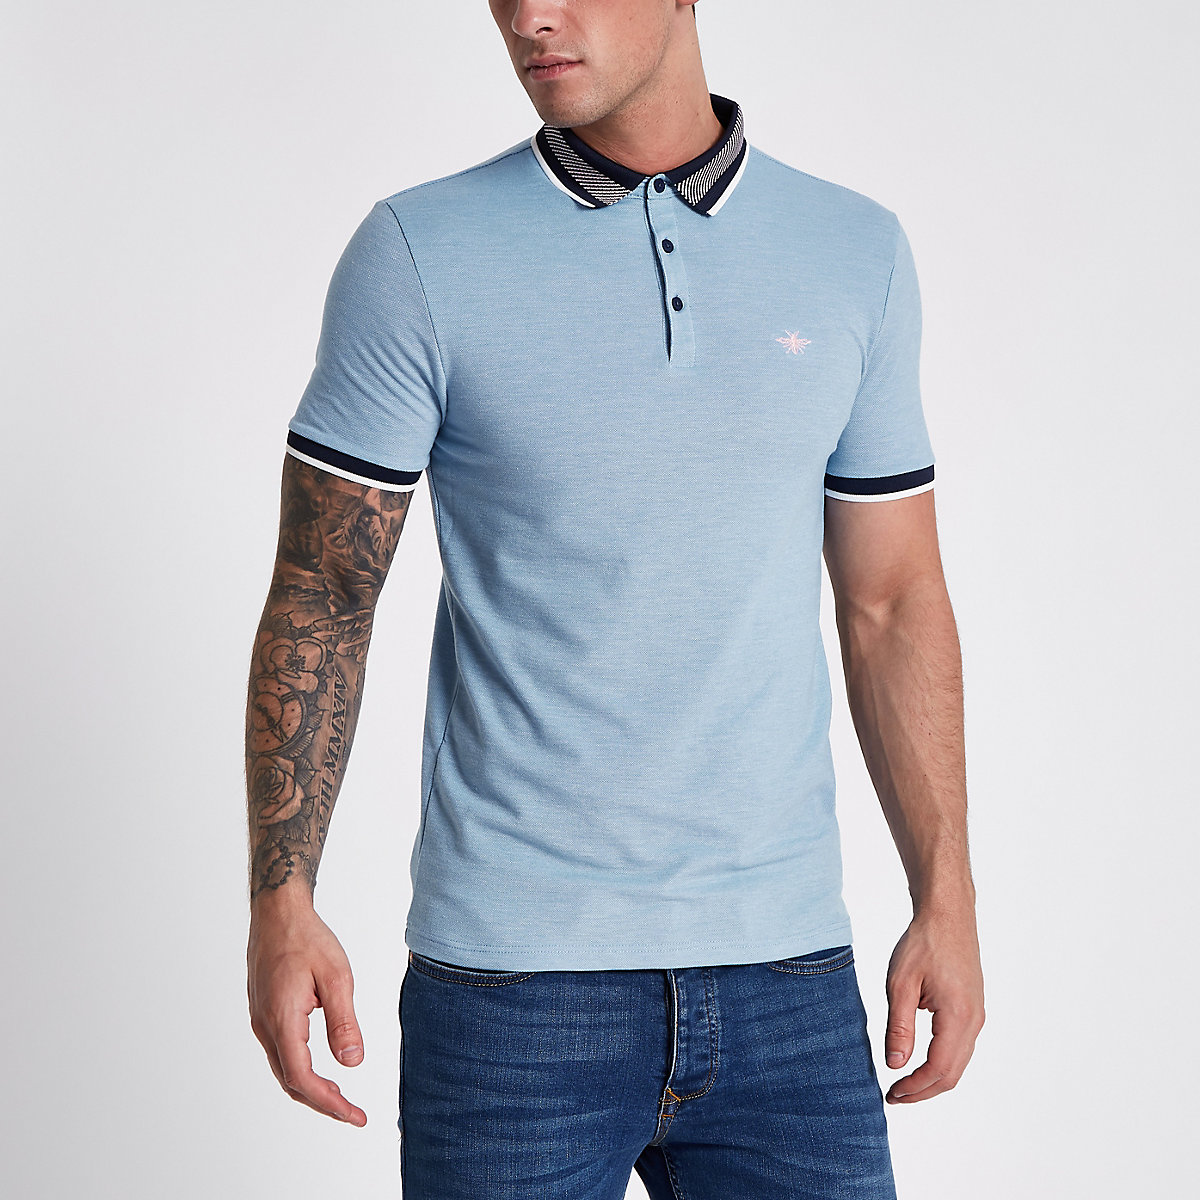 Blue muscle fit wasp embroidery polo shirt